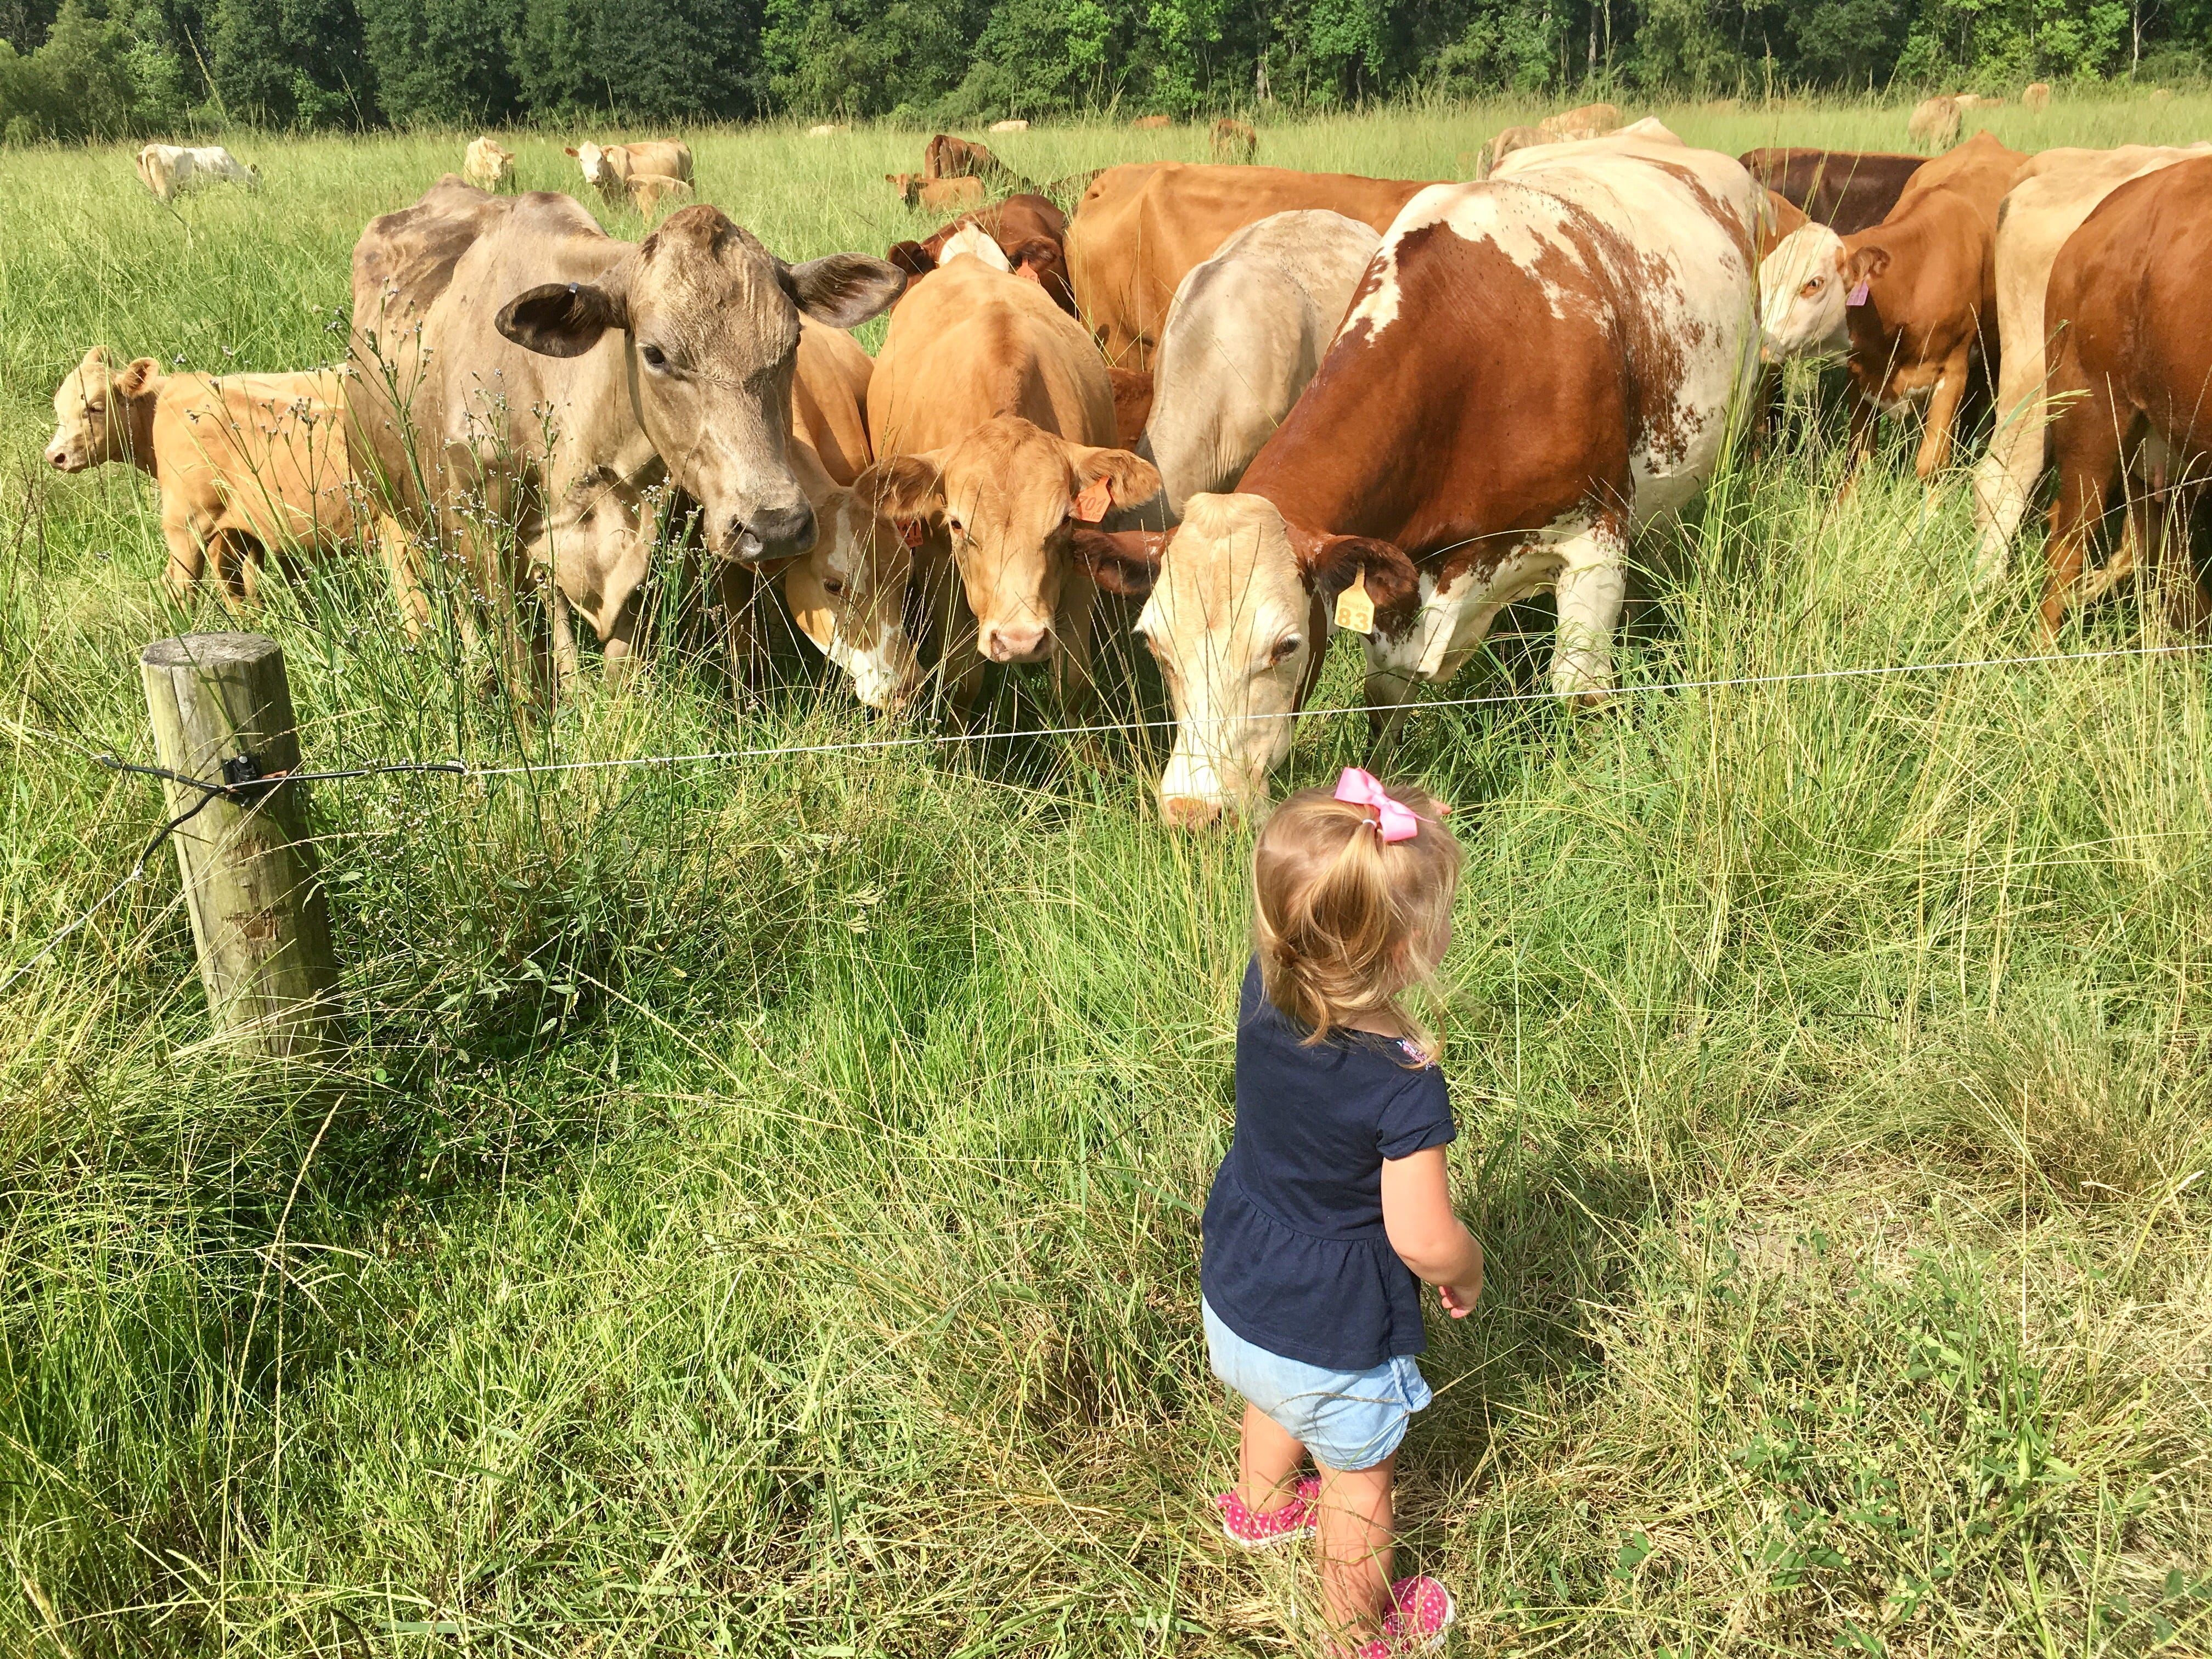 Marie Guidry, 1, meets cows at Brookshire Farm in Abbeville July 20, 2018.